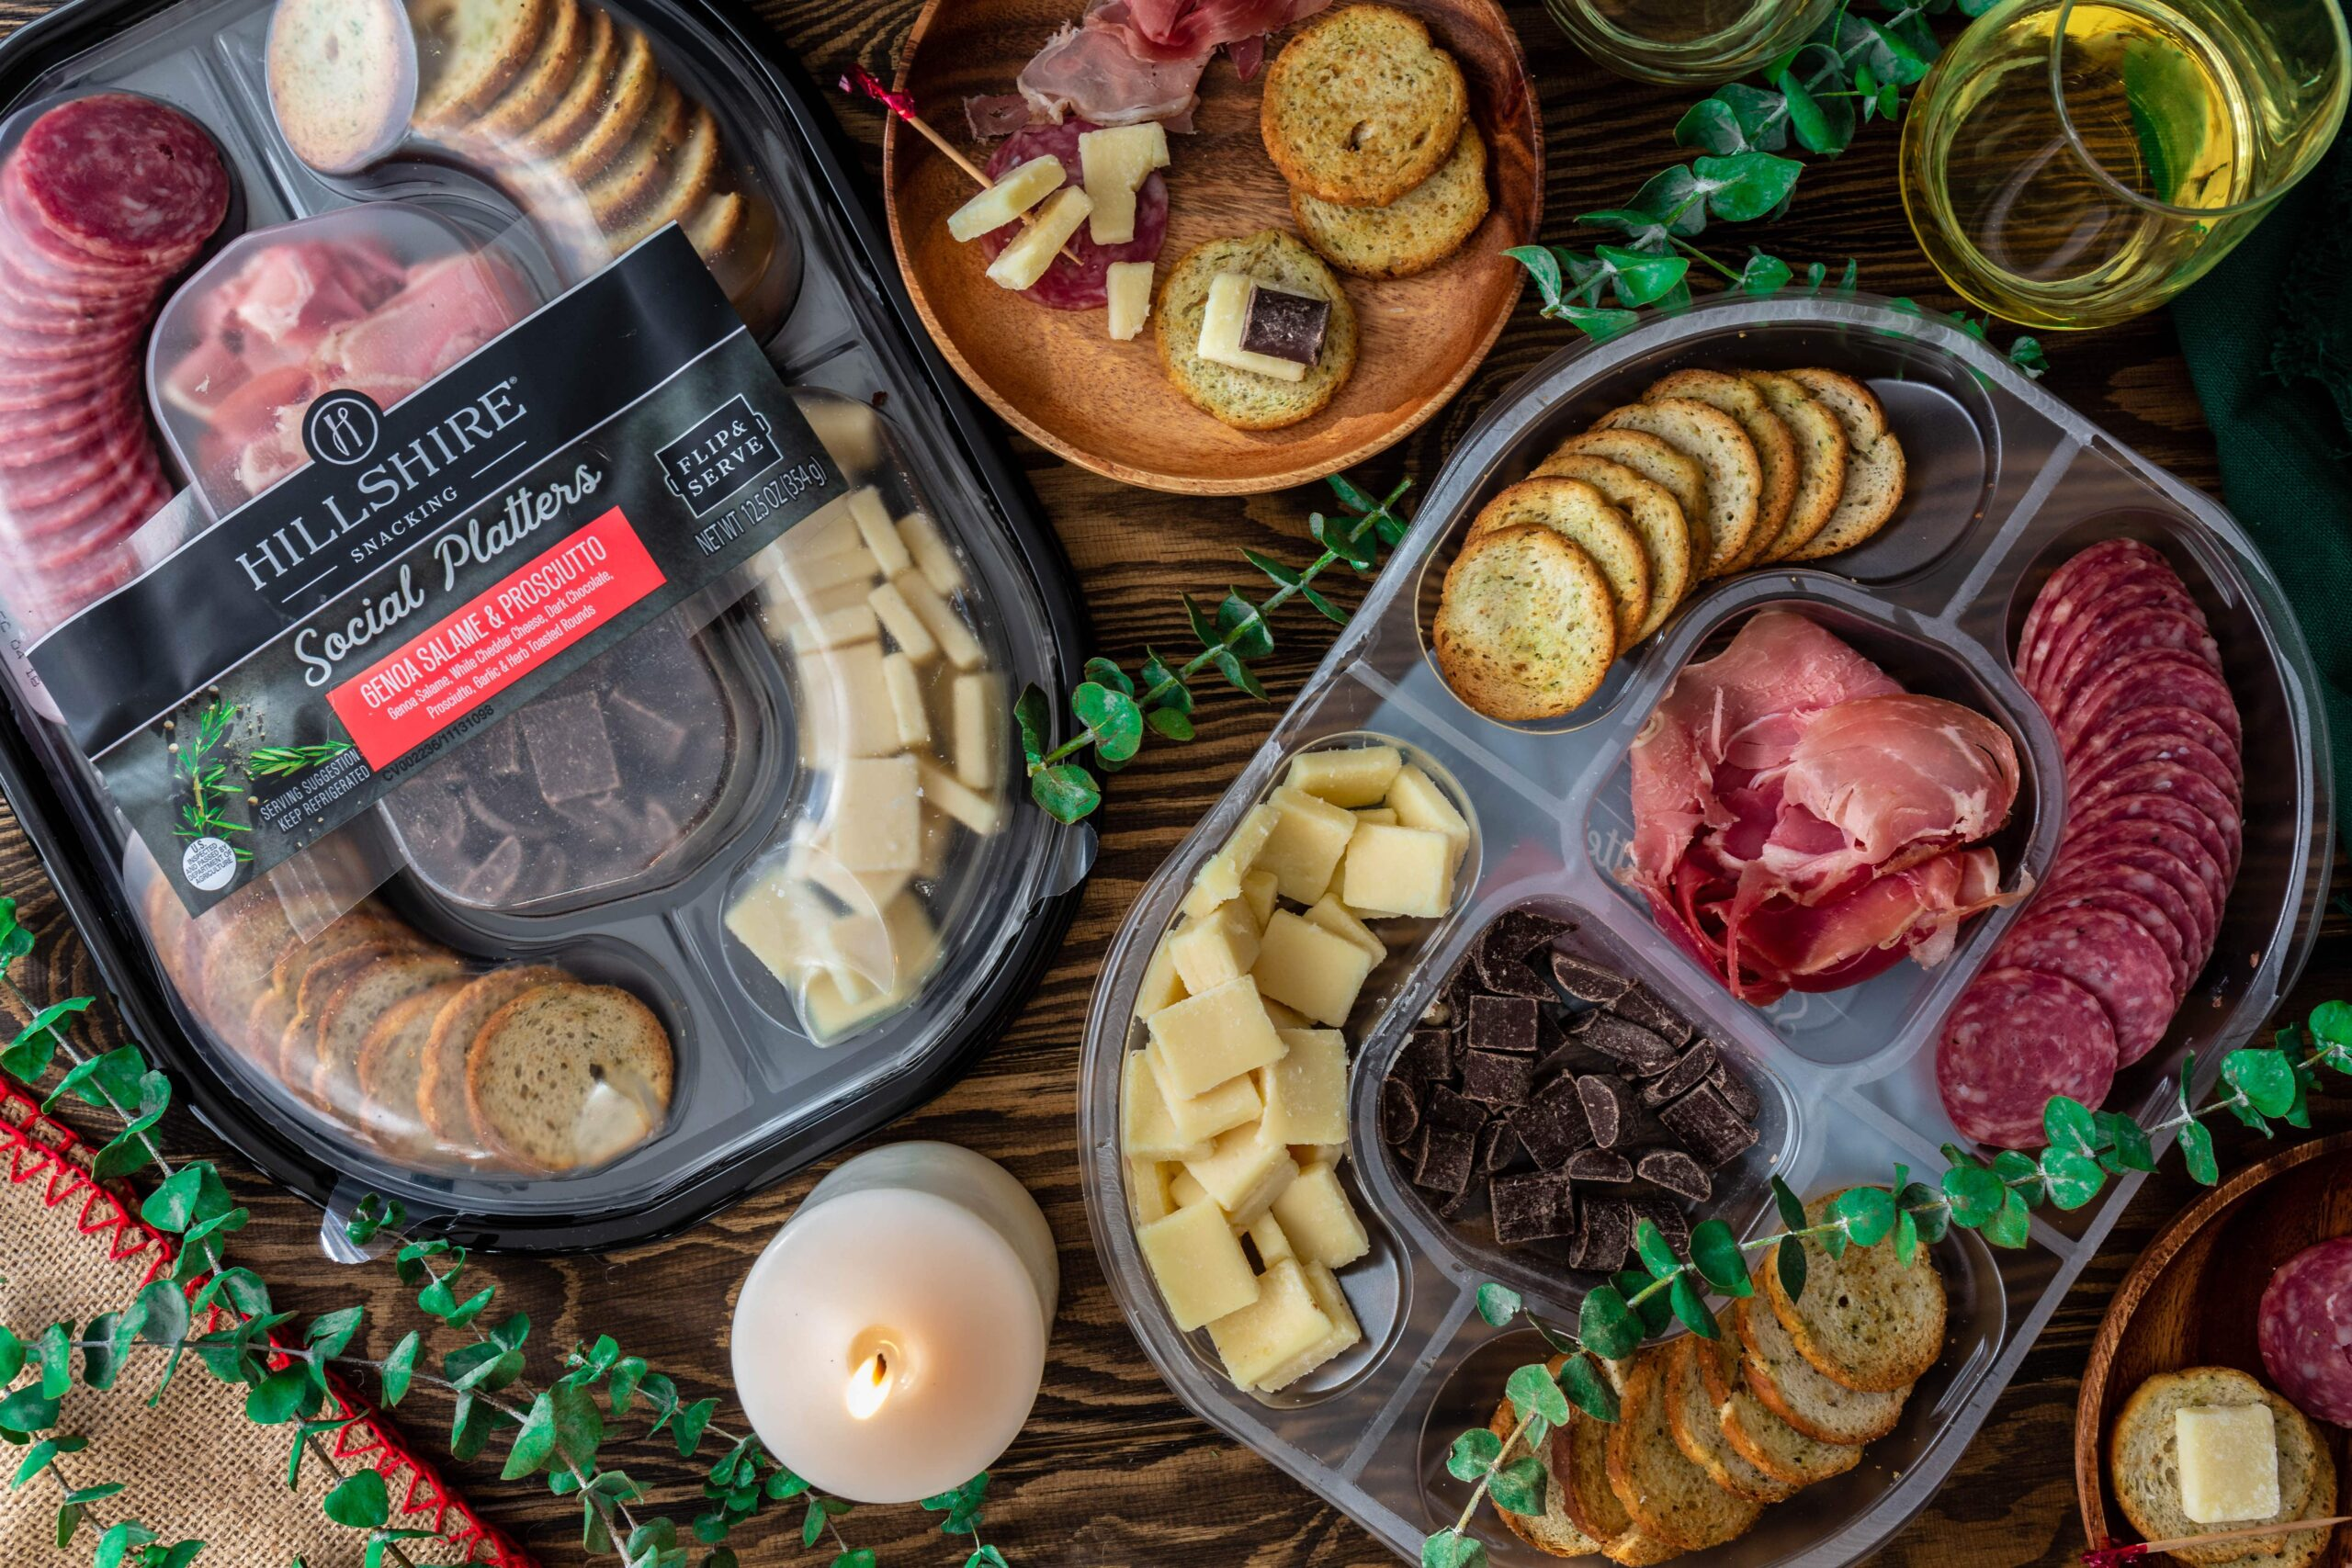 How to Host a Low Key Yet Classy Holiday Party | www.oliviascuisine.com | Imagine you could host a party and enjoy yourself at the same time. Hard to believe it's possible? With the help of Hillshire® Snacking Social Platters, it is! Just head over to the blog to read my tips and be prepared to let go of all that holiday season stress.